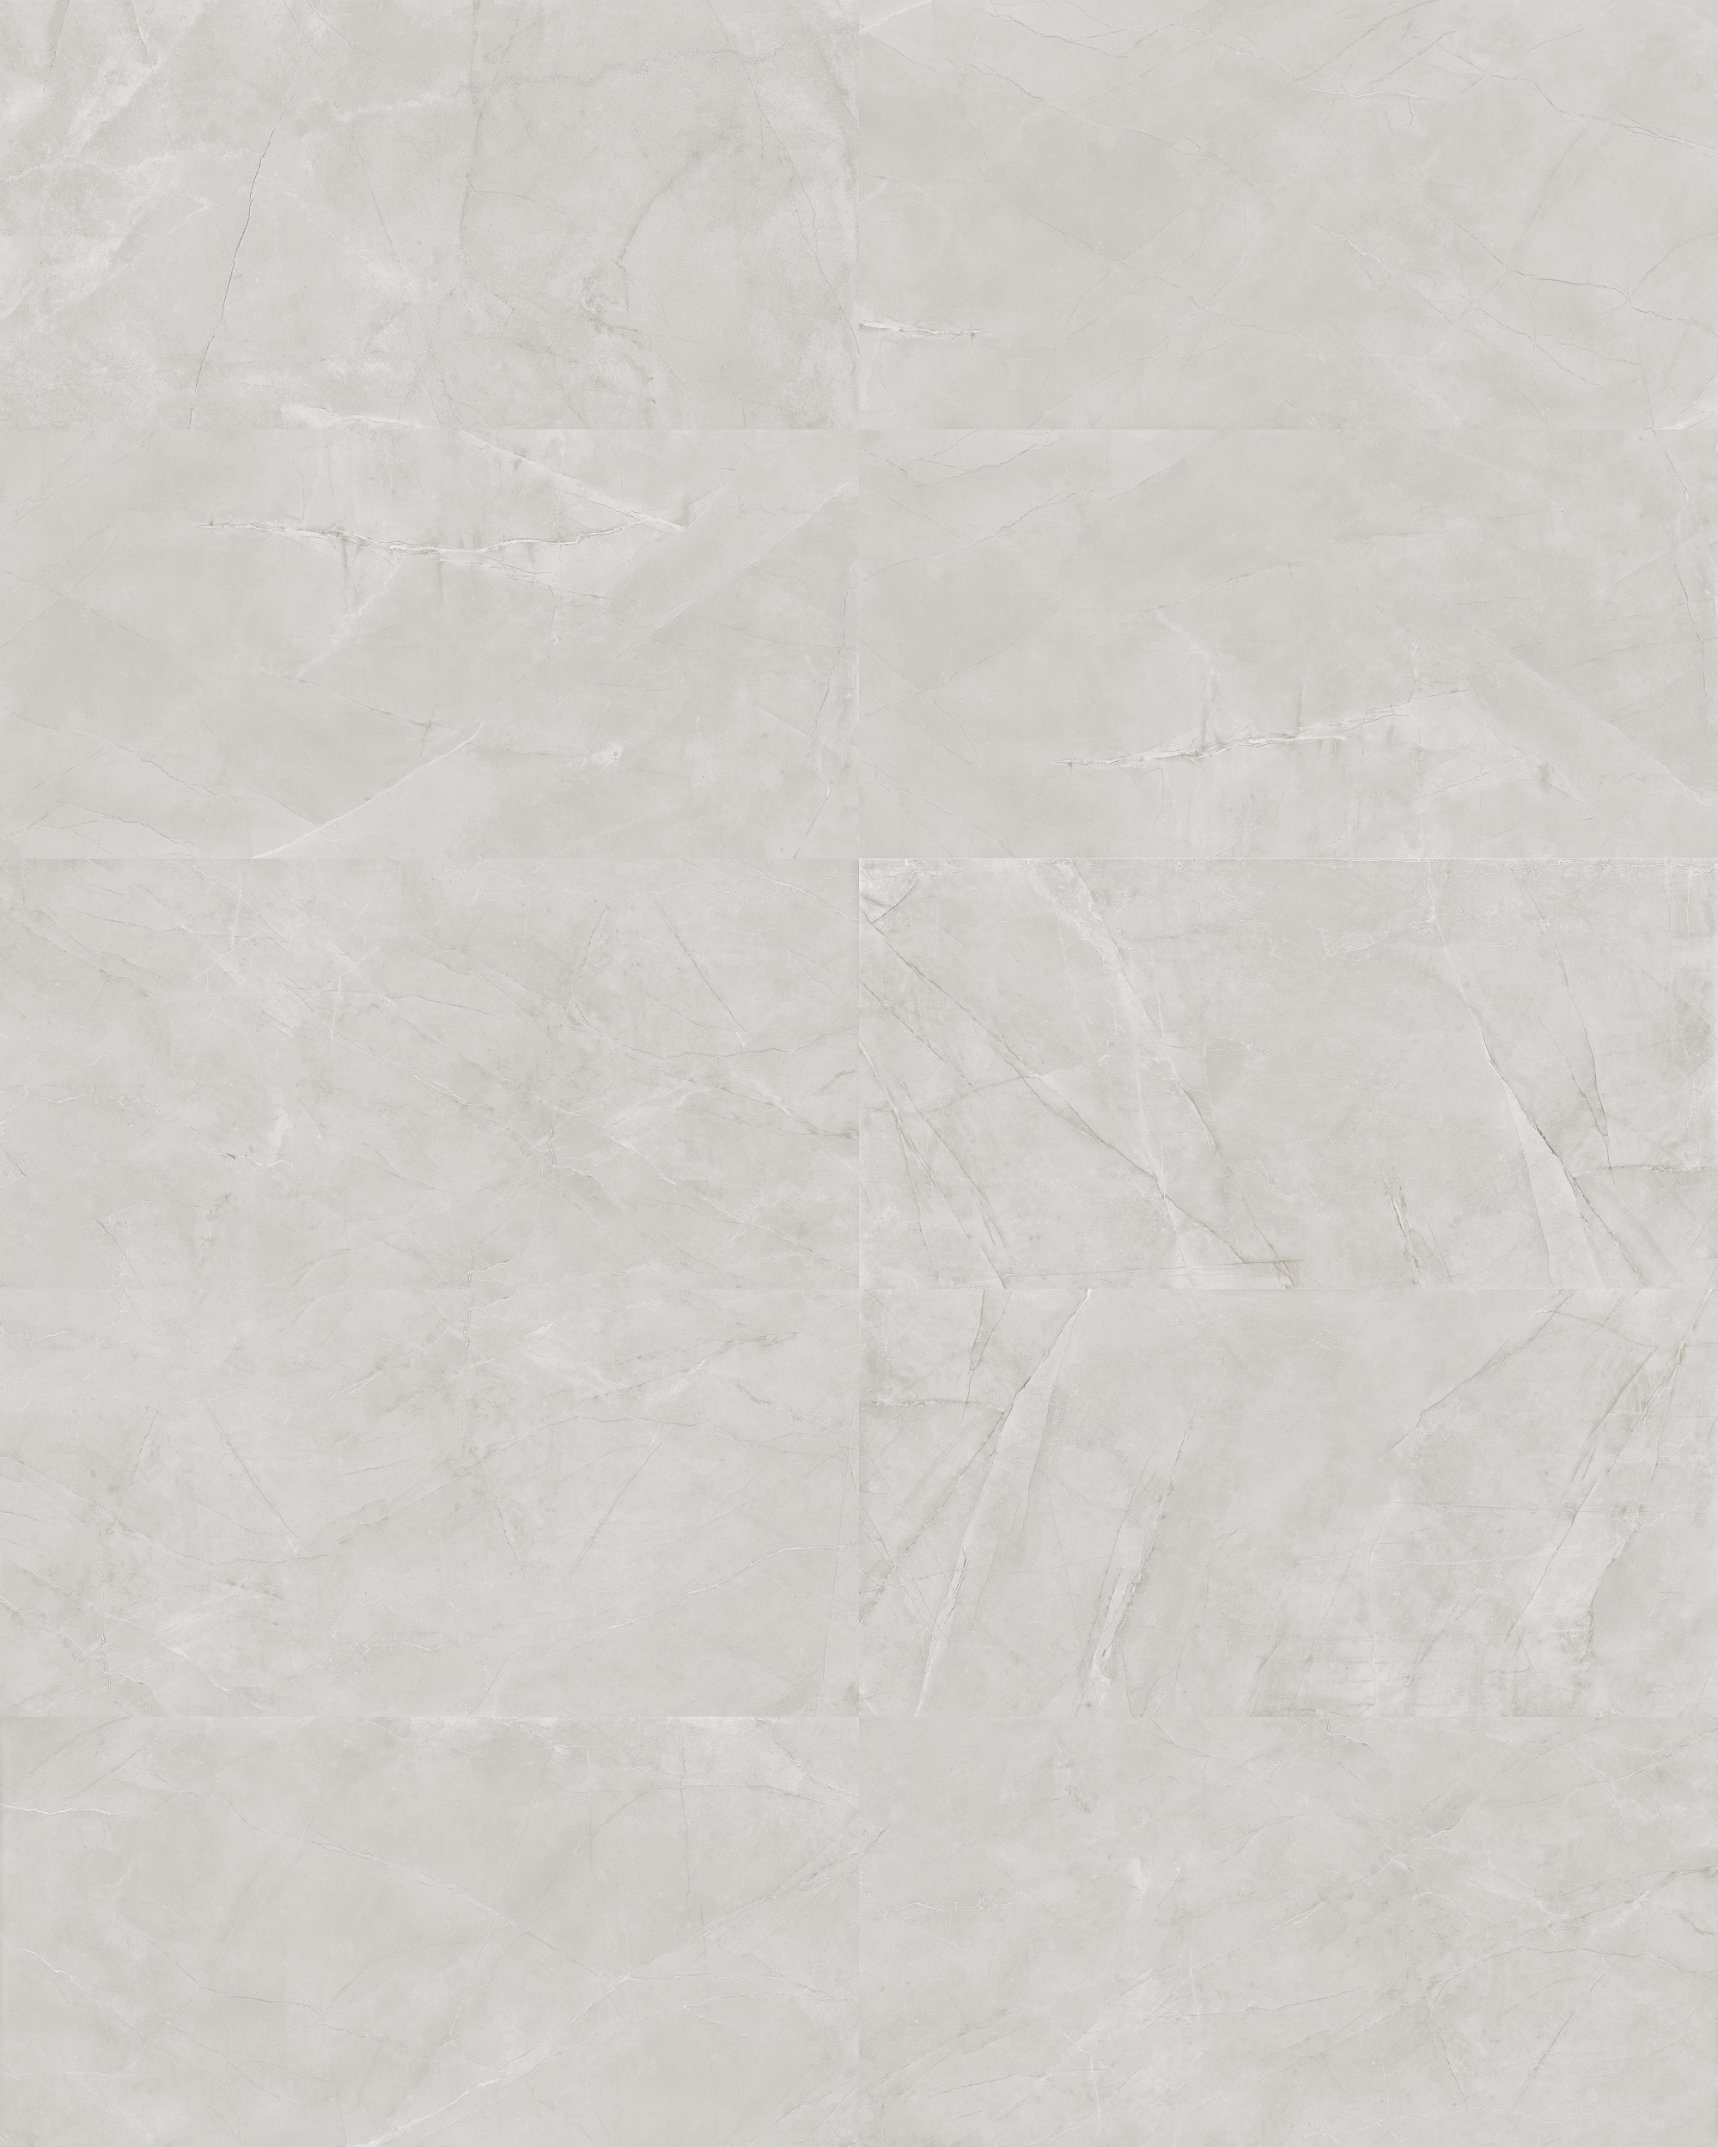 China One Stone N Surfaces Grey Polished Porcelain Floor Wall Tile